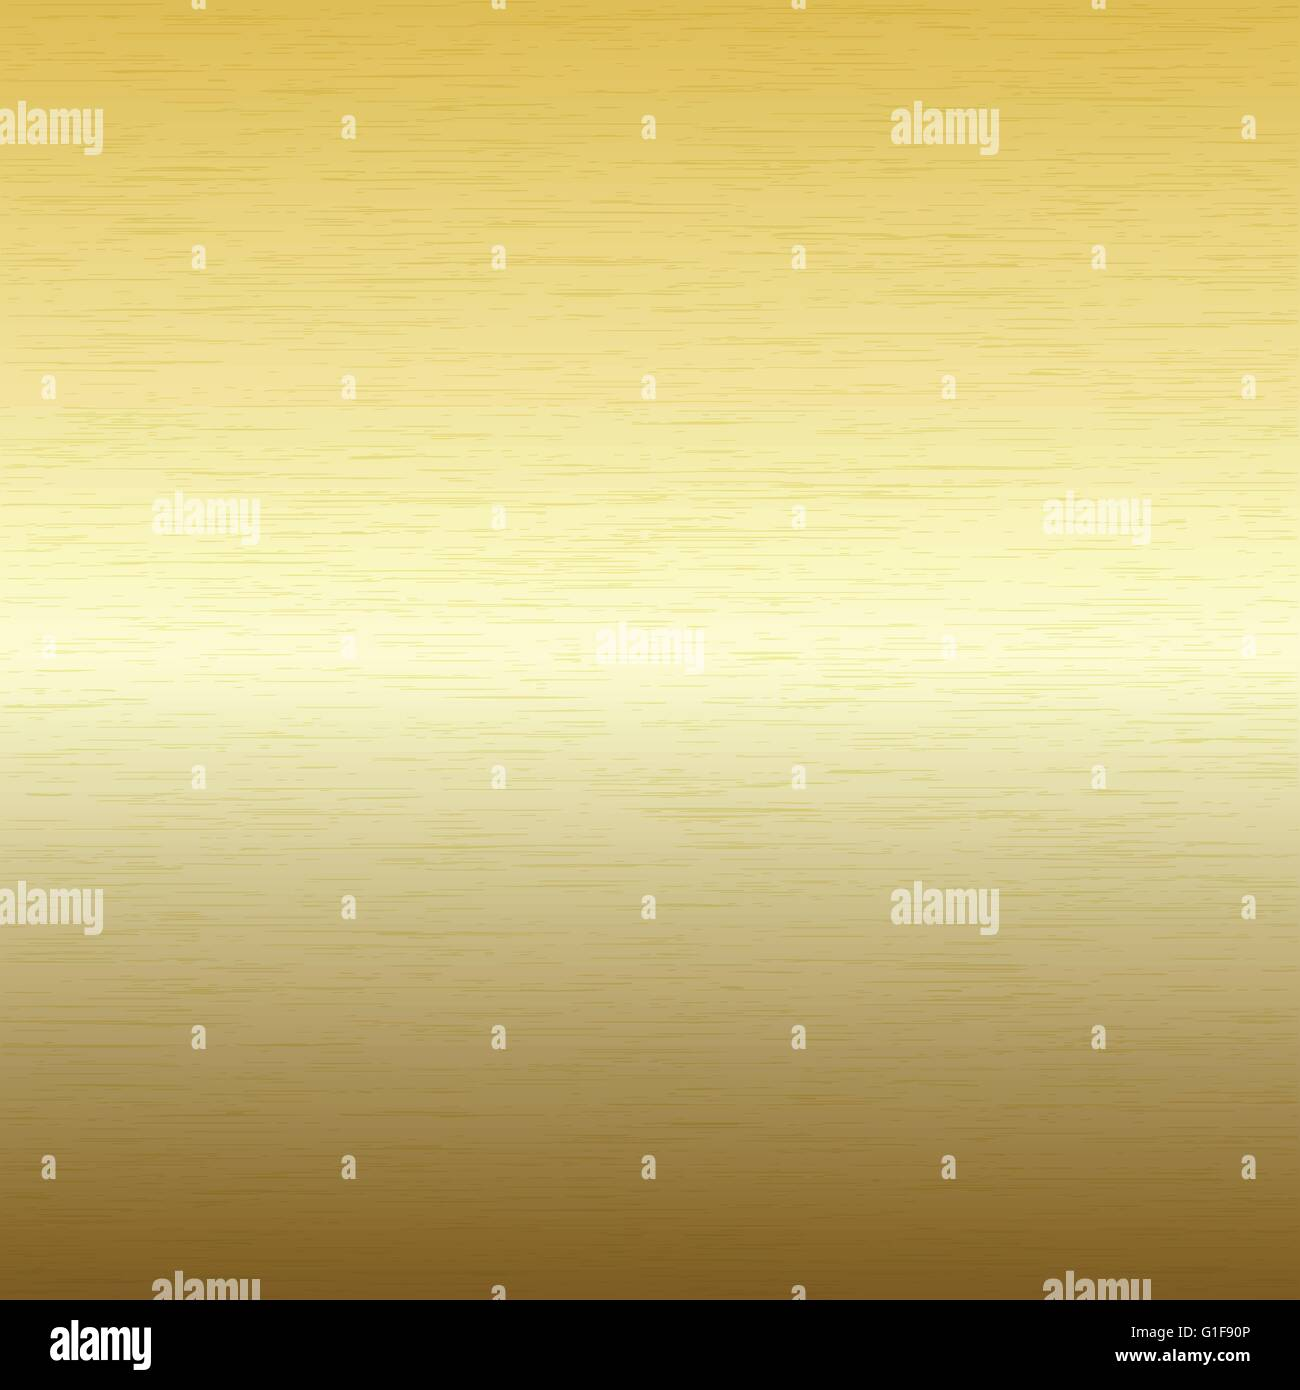 Vector image - Metal background, texture of brushed gold plate - Stock Vector